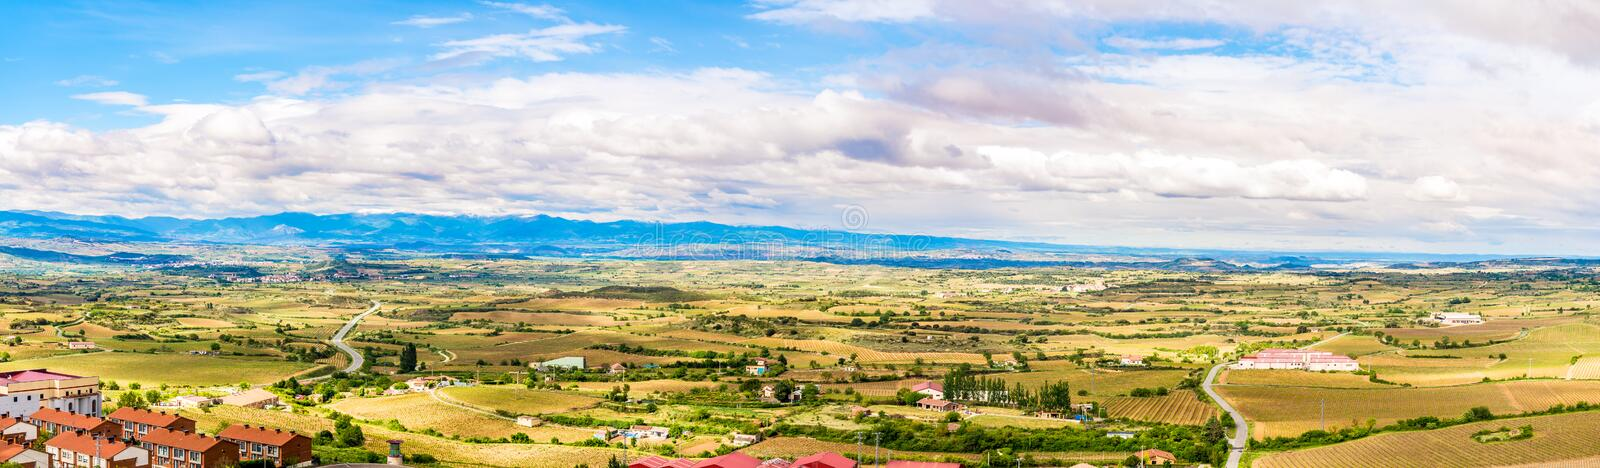 Panoramic view at the surroundings of the town Laguardia in Spain stock images